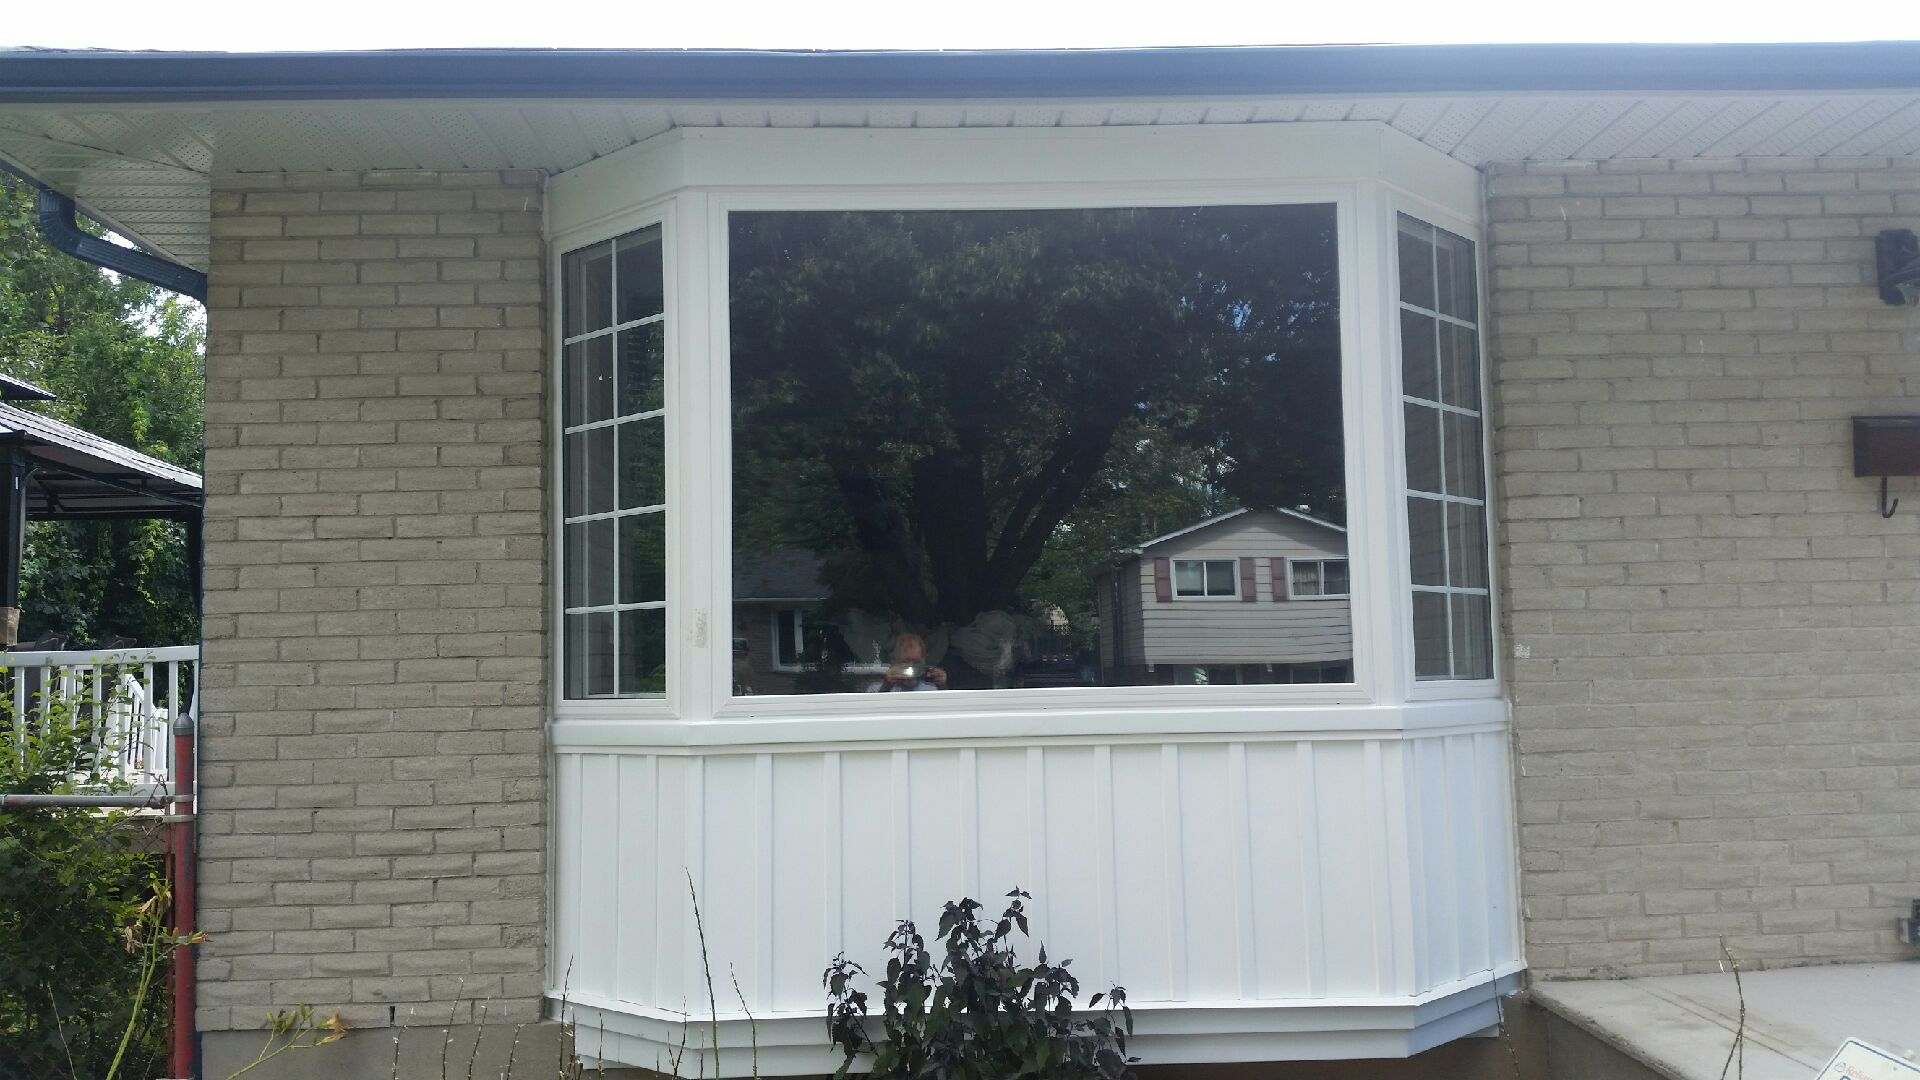 Bay window installation completed by Beaumart Aluminum Limited in London, ON